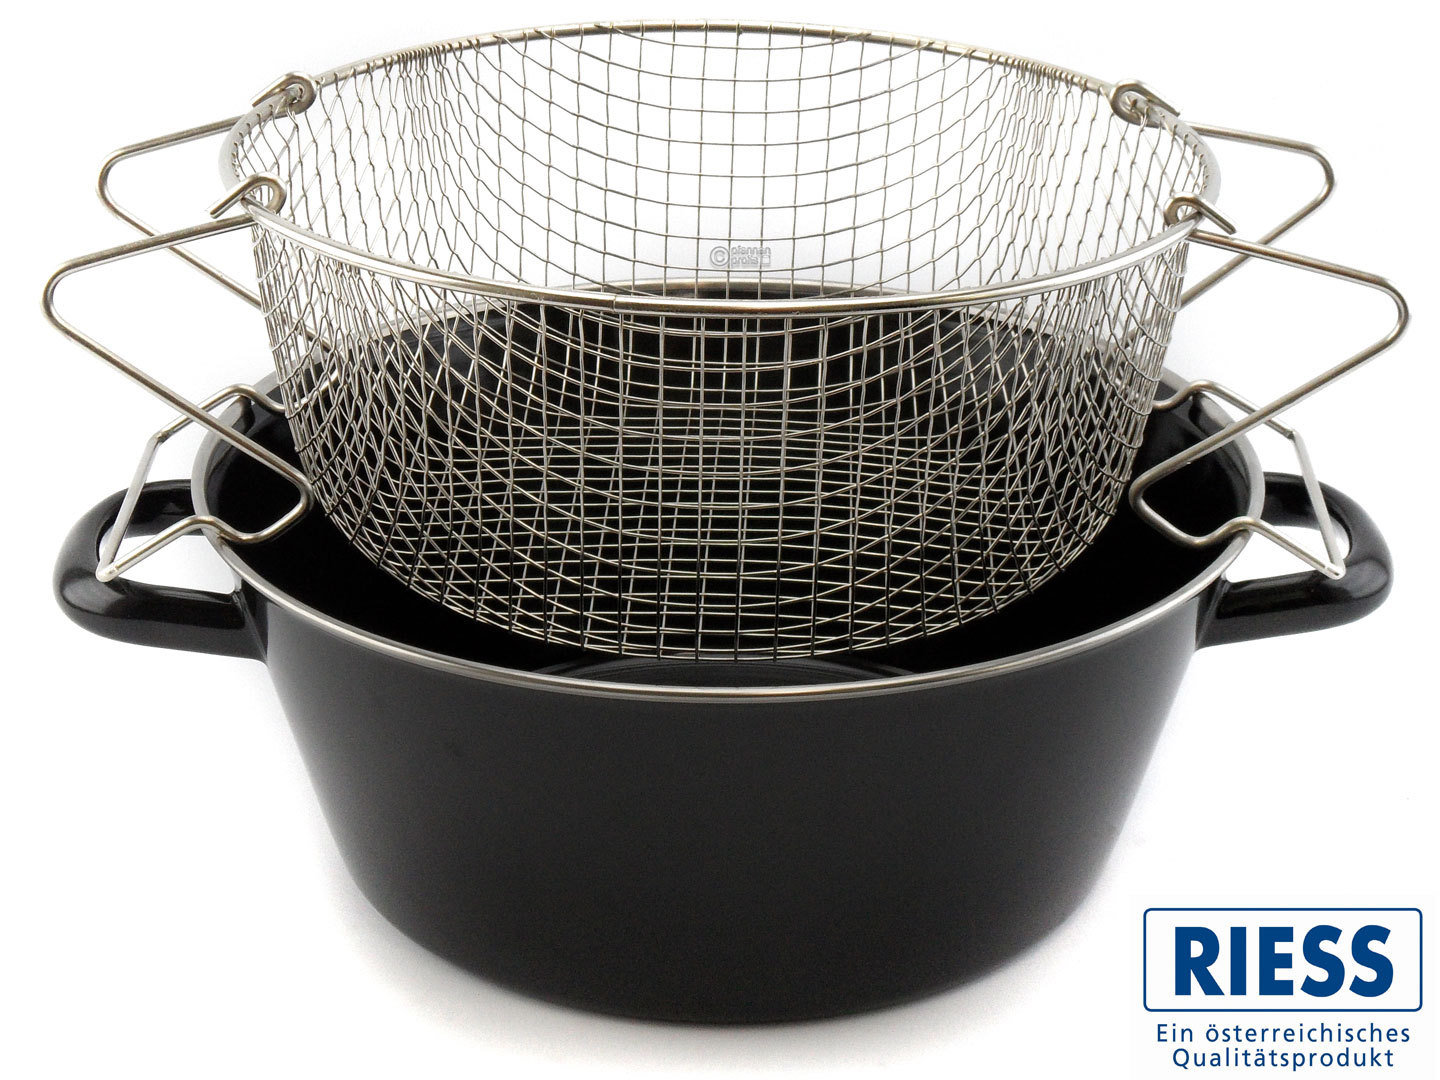 RIESS chip pan enameled steel 24 cm with basket insert